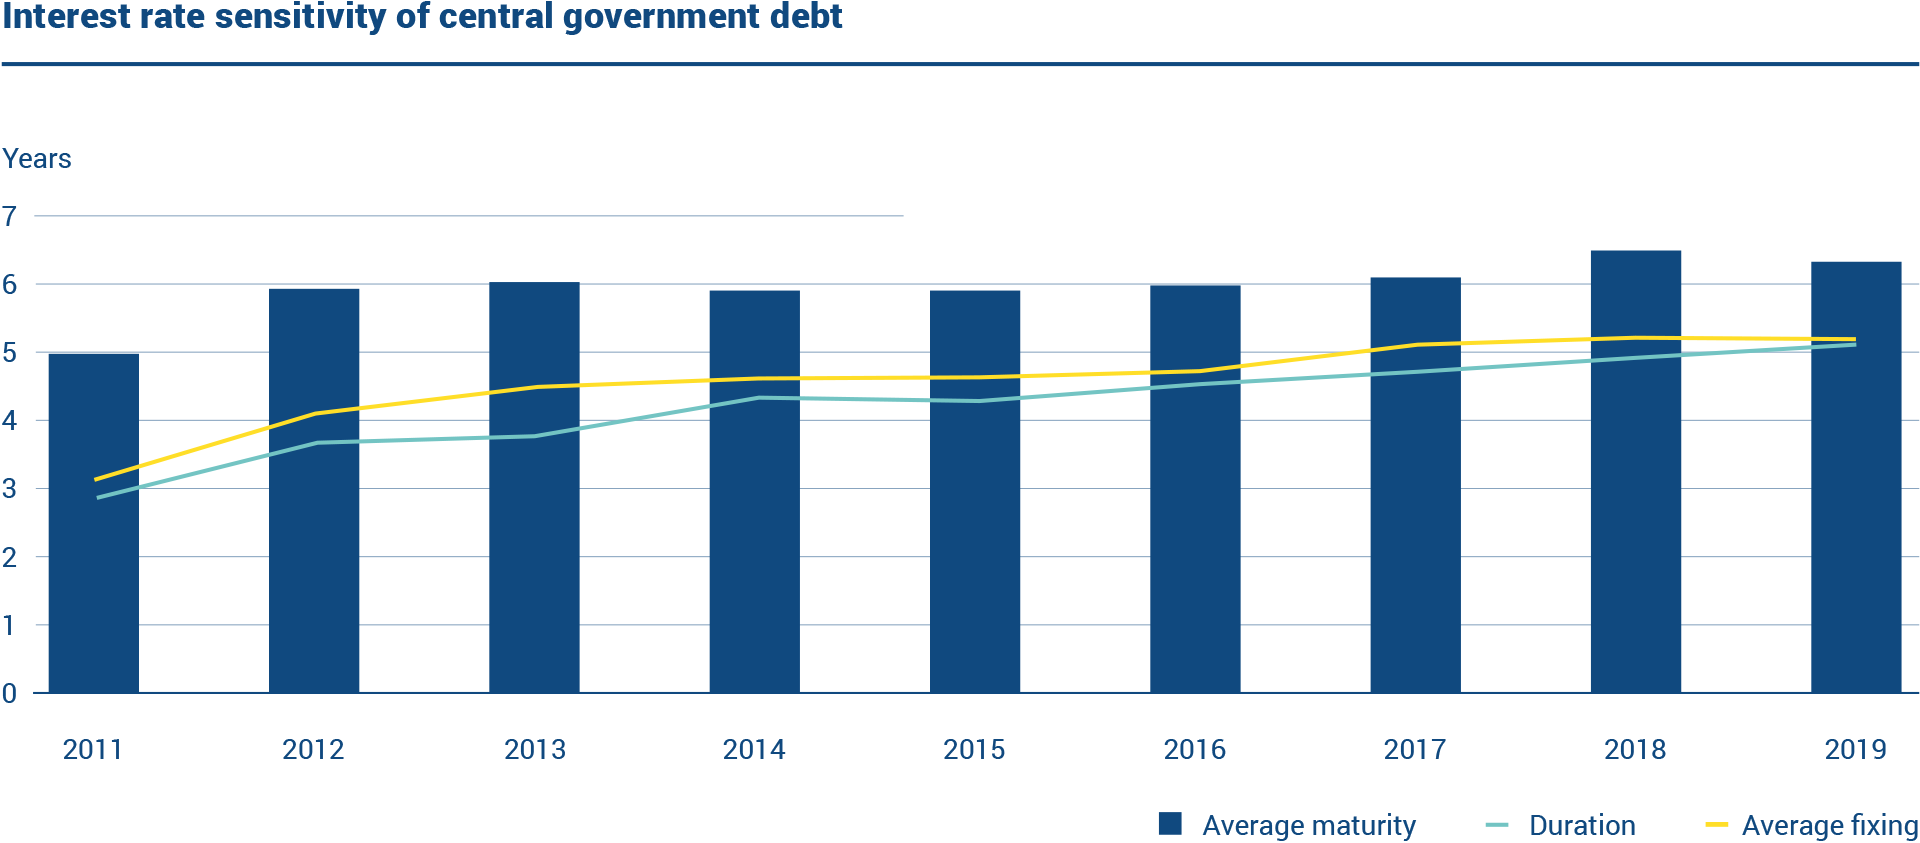 The statistics present key figures on the interest rate sensitivity of central government debt. At the end of 2019, the average fixing of the central government debt was 5.14 years and duration 5.08 years. The average maturity was 6.33 years.